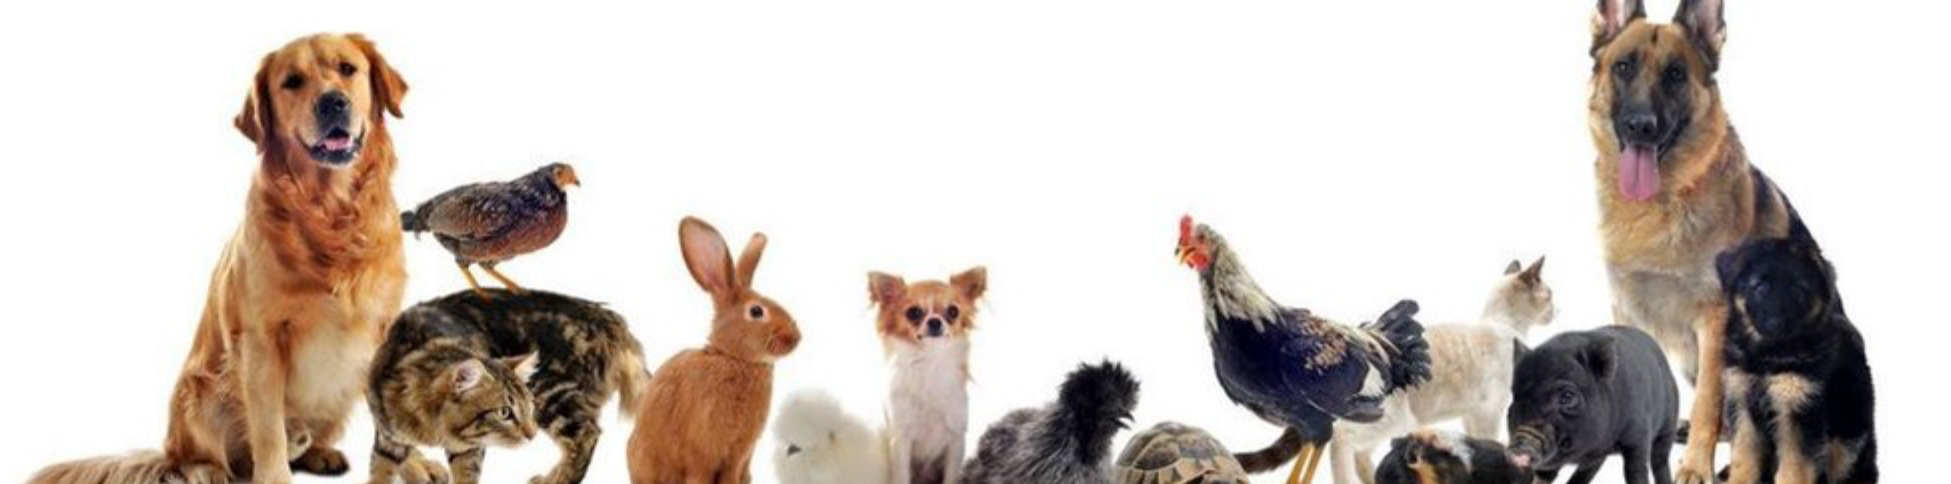 Companion Animal project - Picture of several dogs, chickens, cats, rabbit, turtle, and pigs